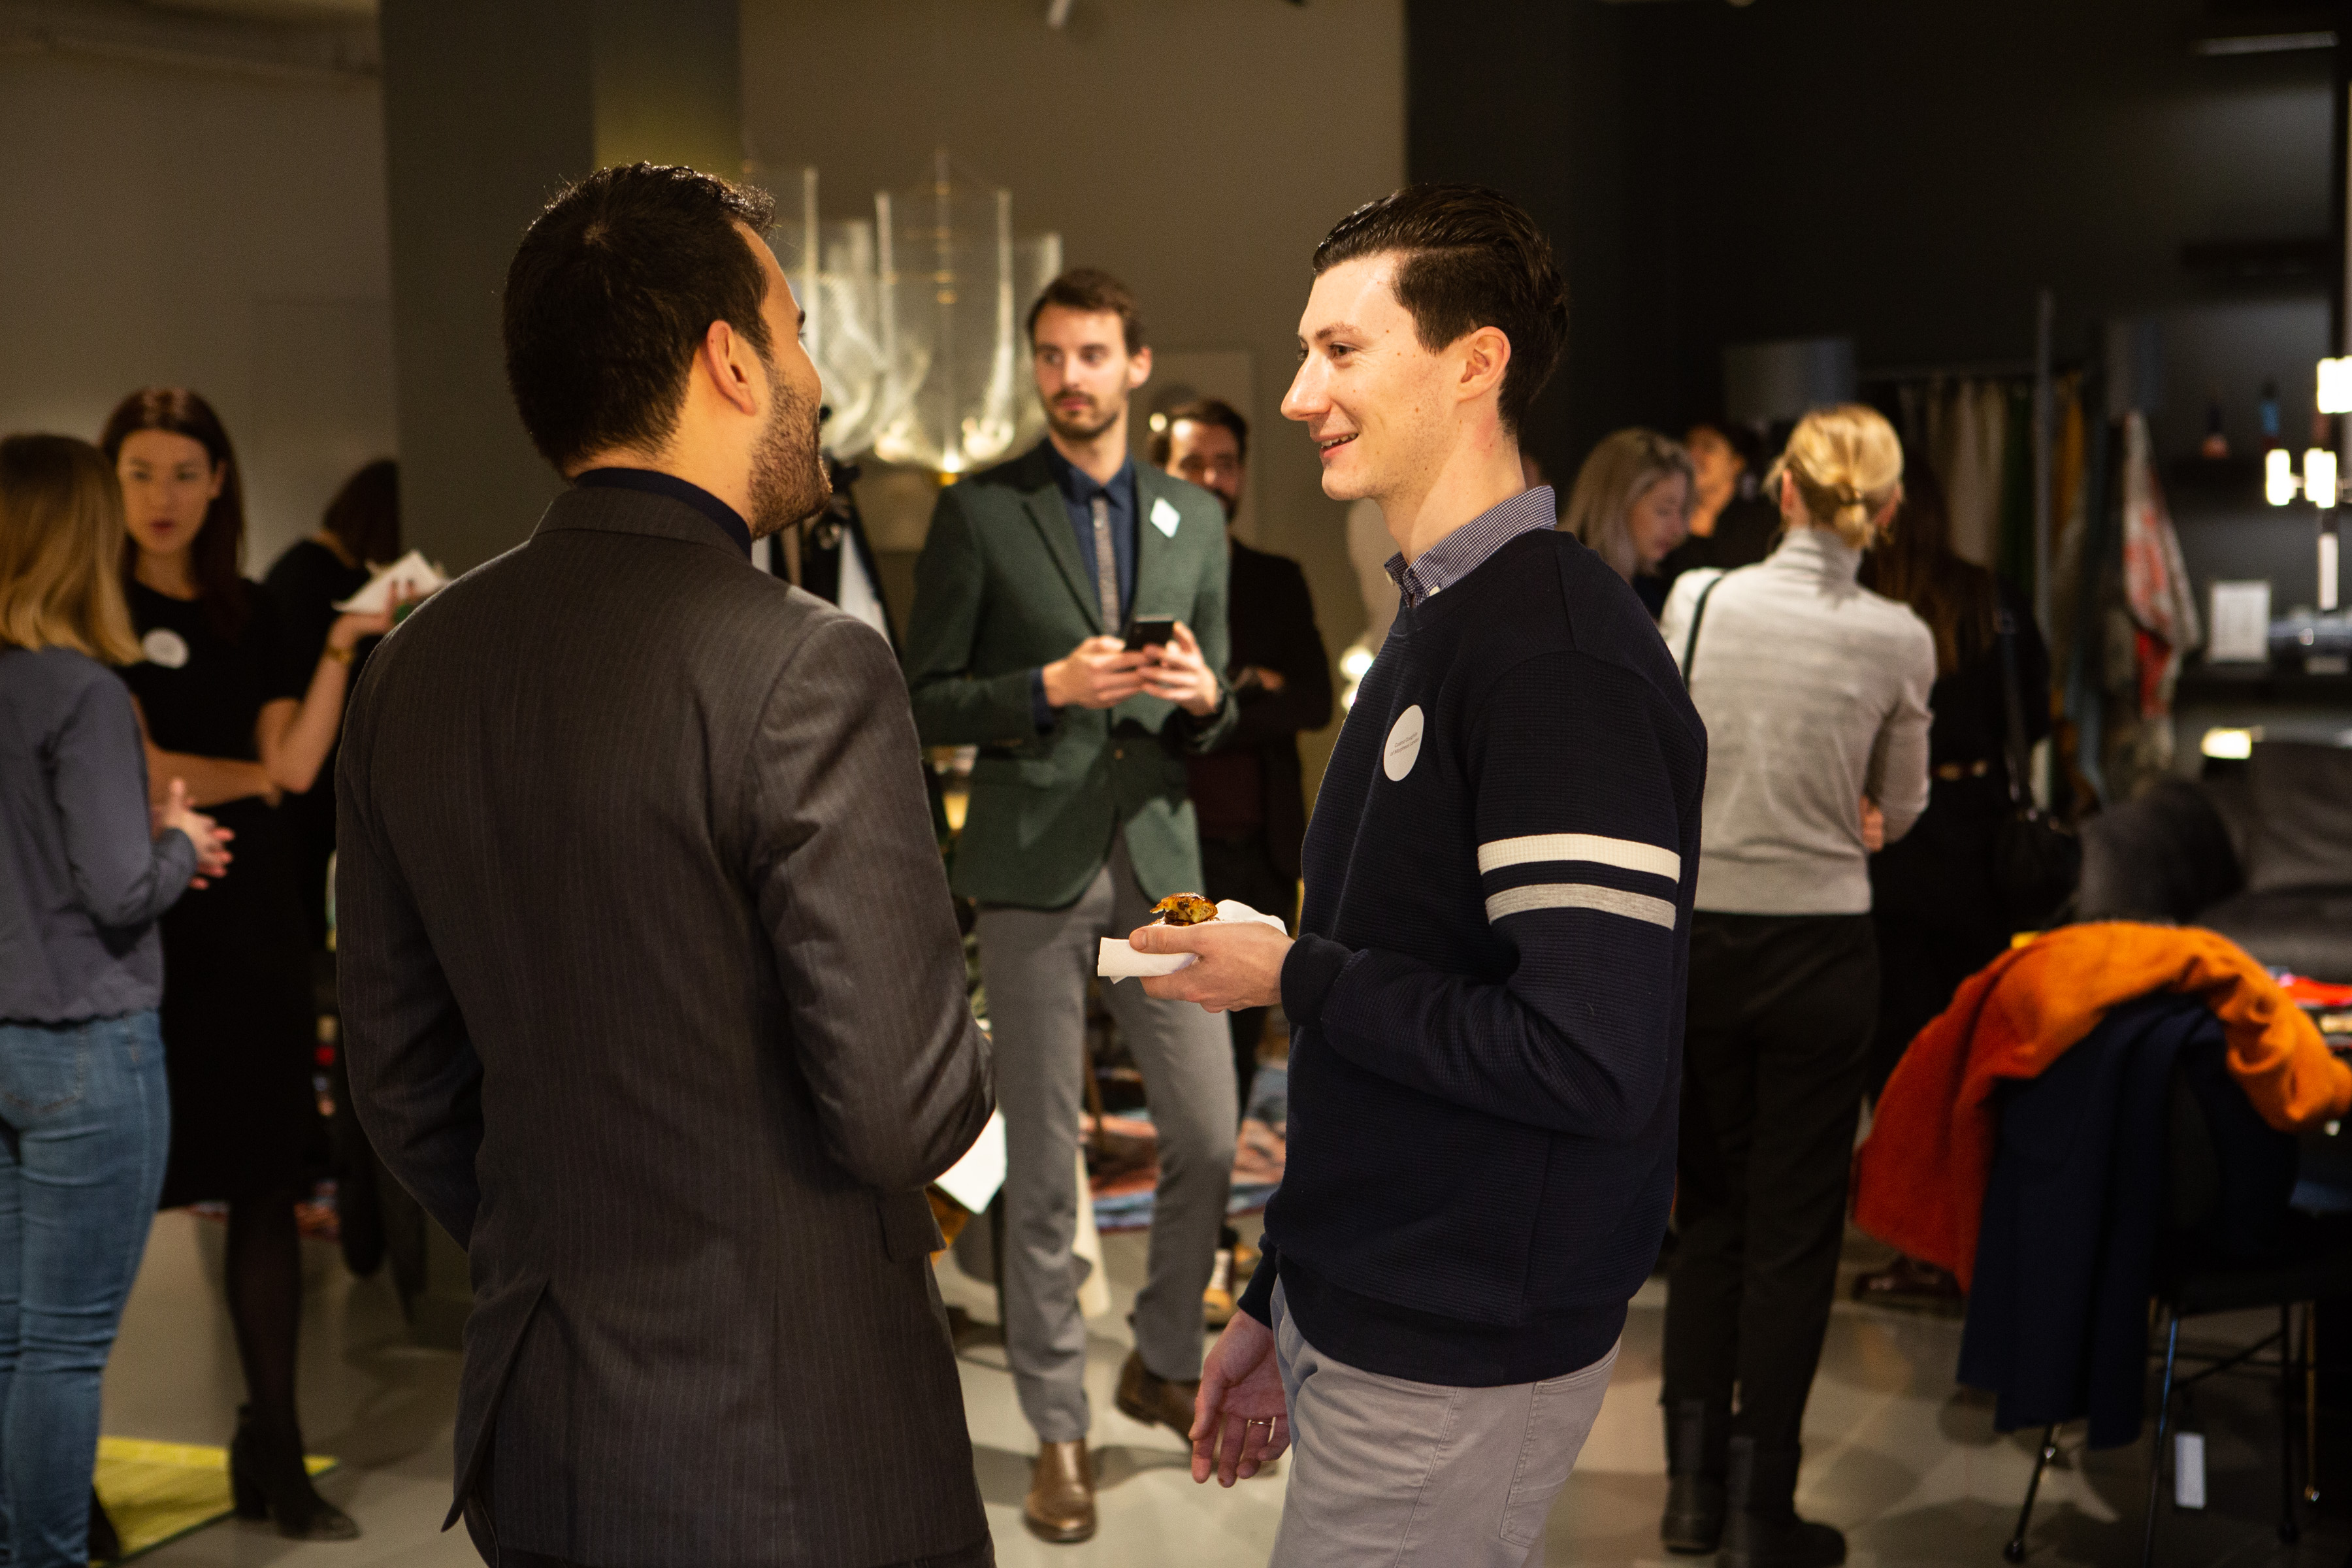 Clippings interior design event in London - Moooi Carpets